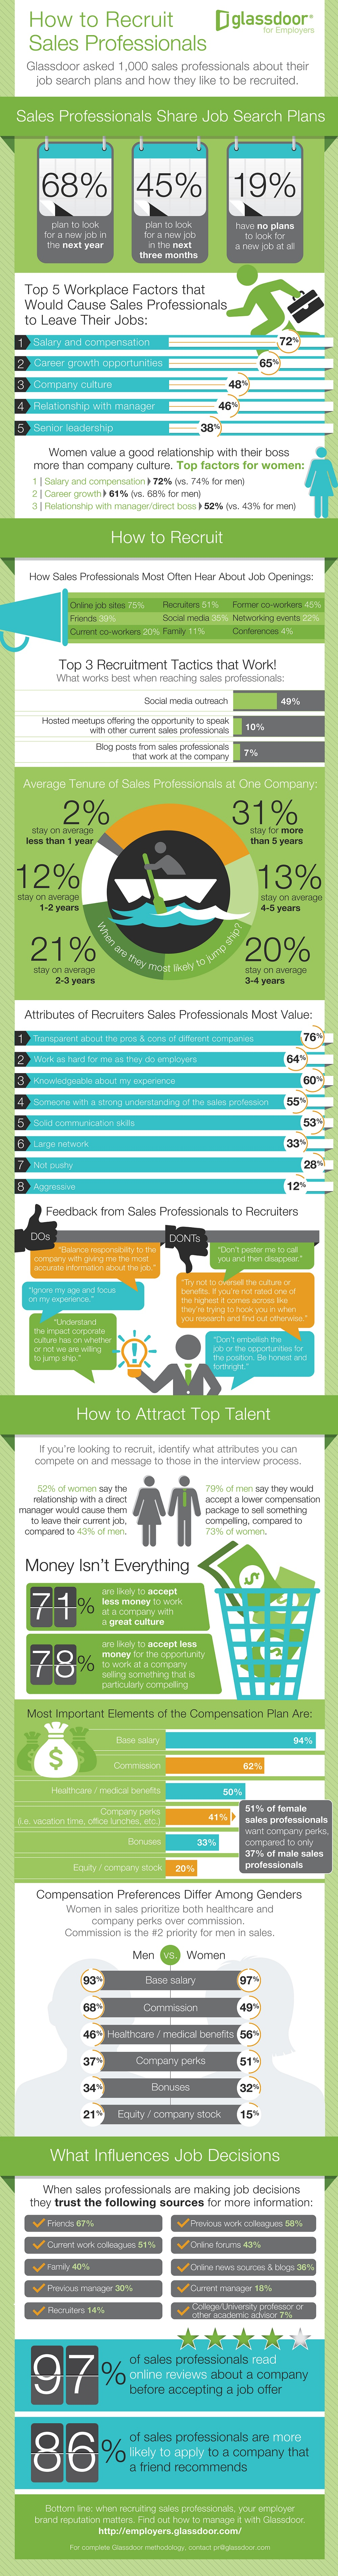 What Do Sales Professionals Want And How To Recruit Them